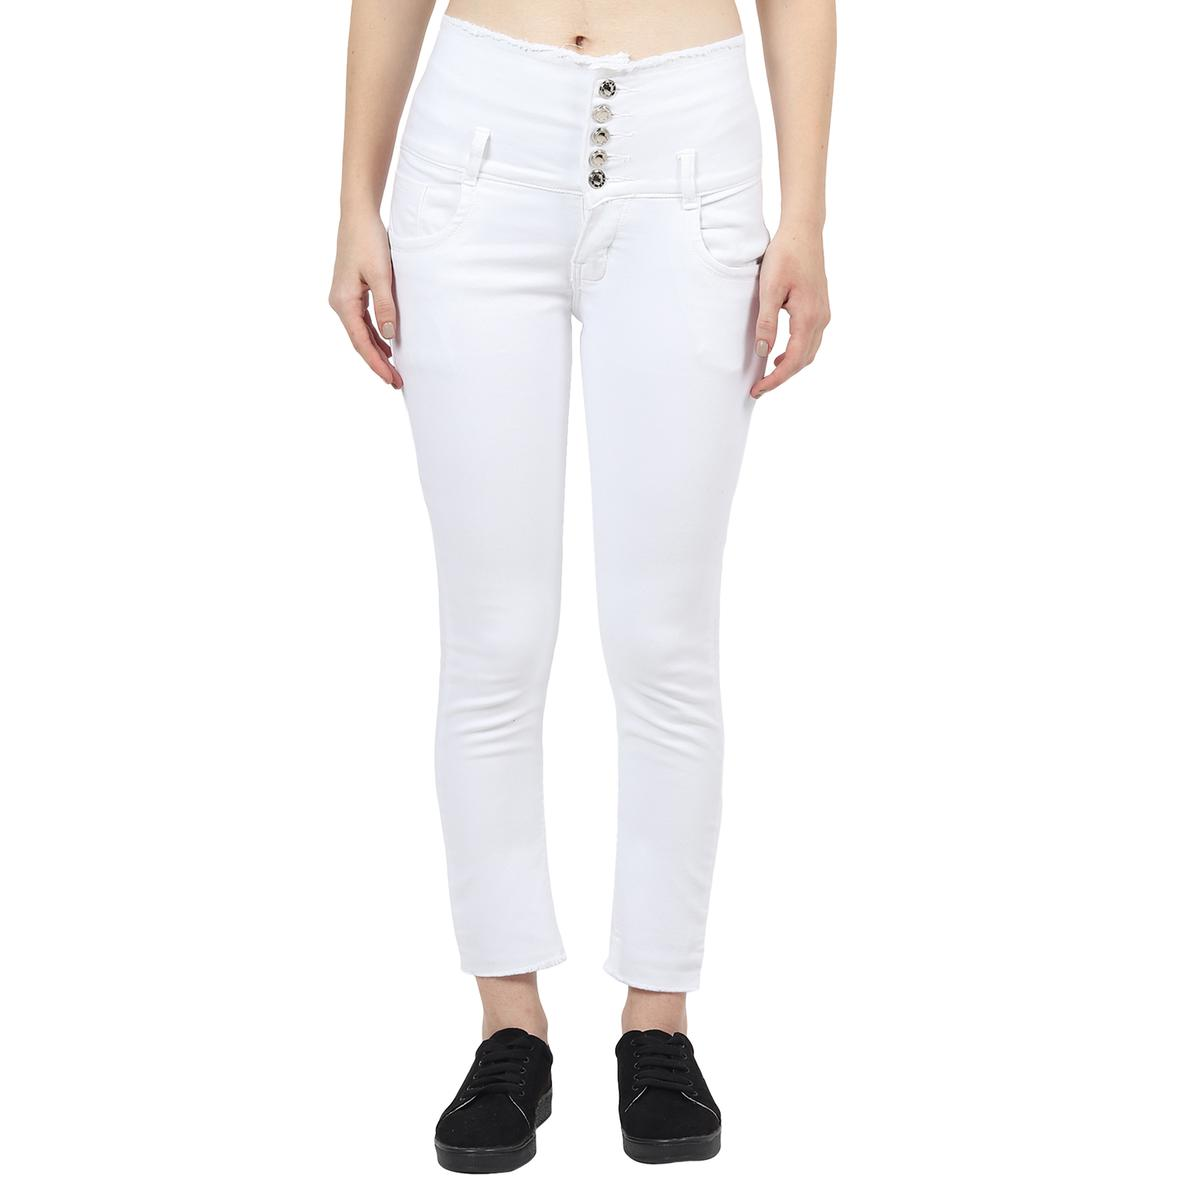 Veravibe - High Waist Skinny Fit Frayed Premium White Stretchable Jeans